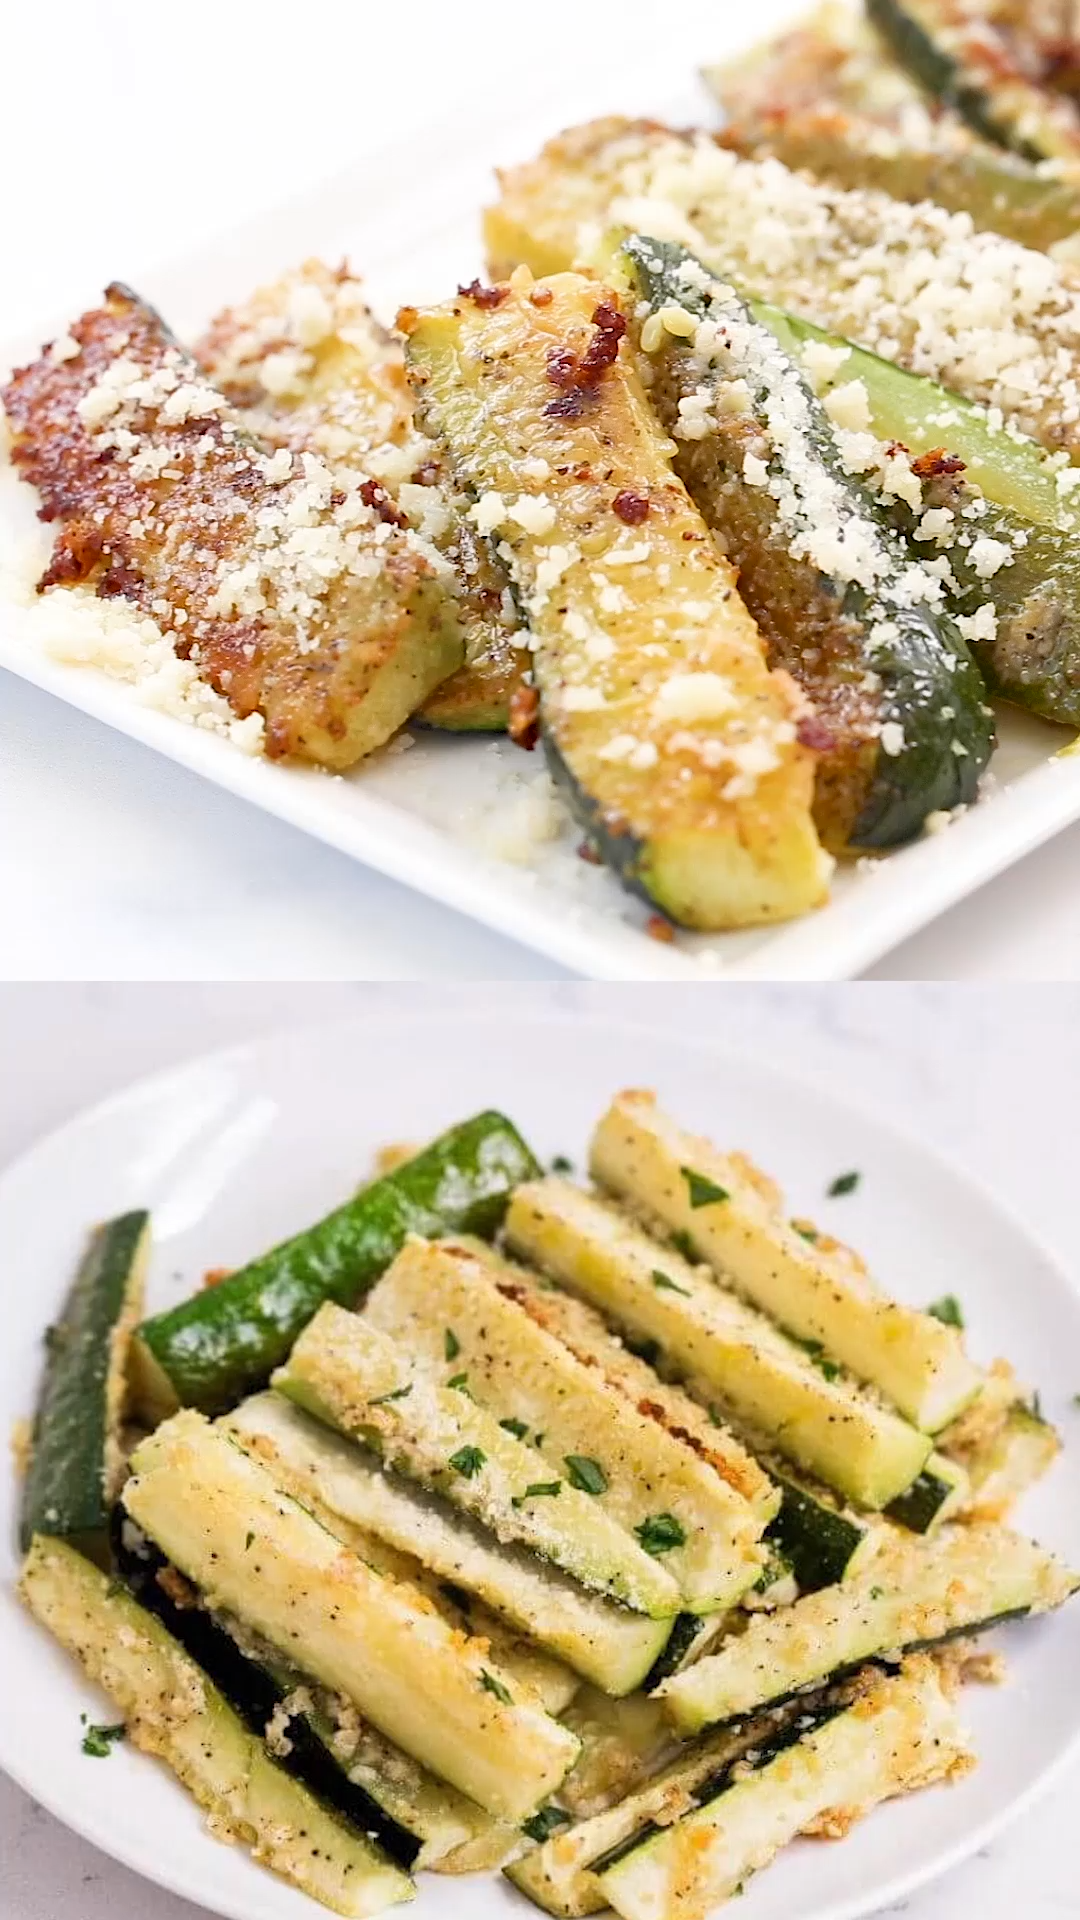 Baked Zucchini Fries -   19 healthy recipes Sides veggies ideas